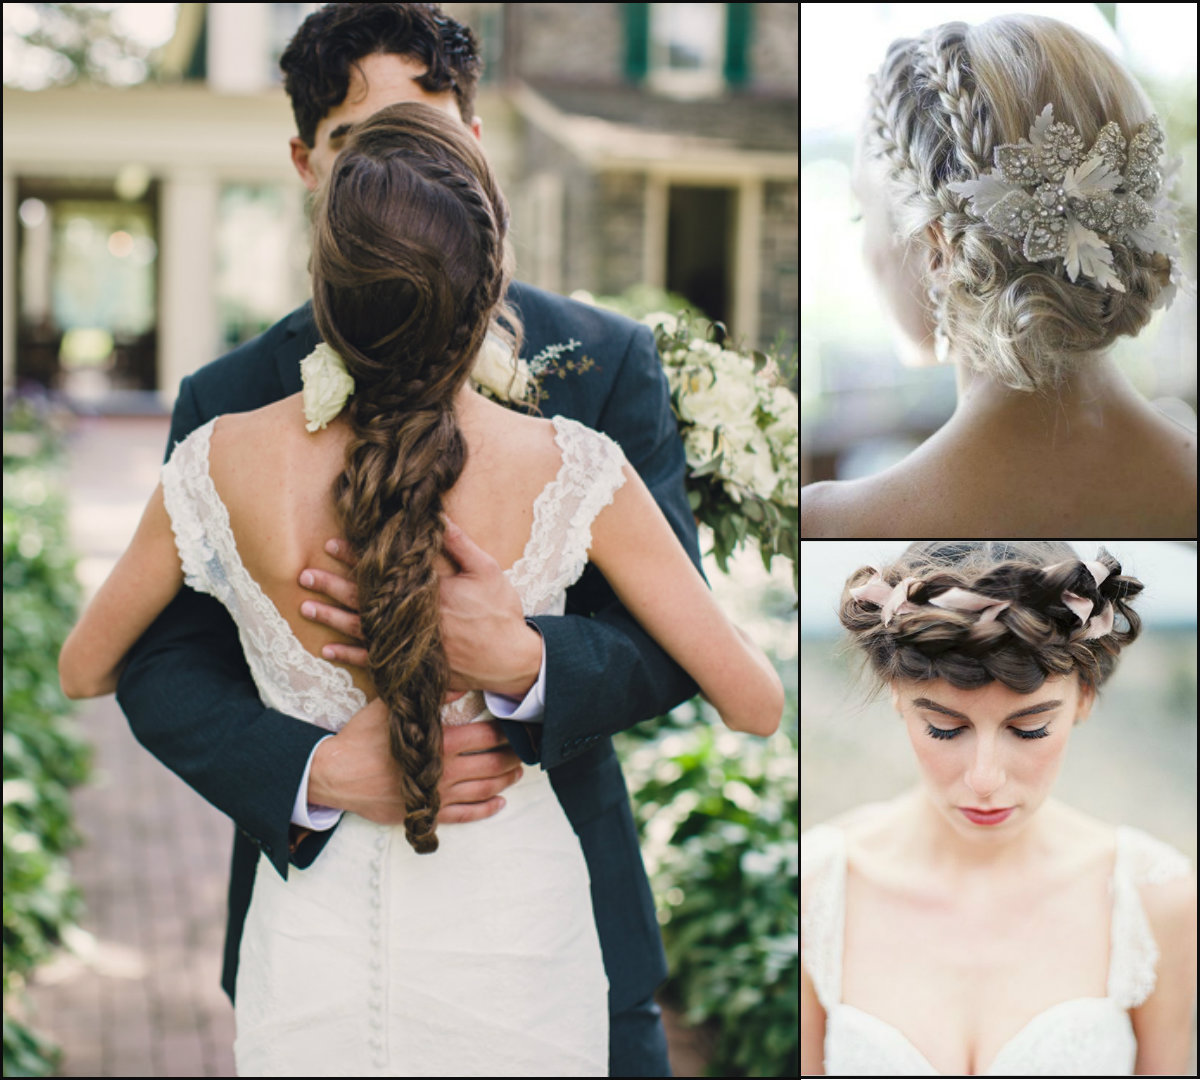 Braid Hairstyles For Wedding Party: Lovely Wedding Braids Hairstyles 2017